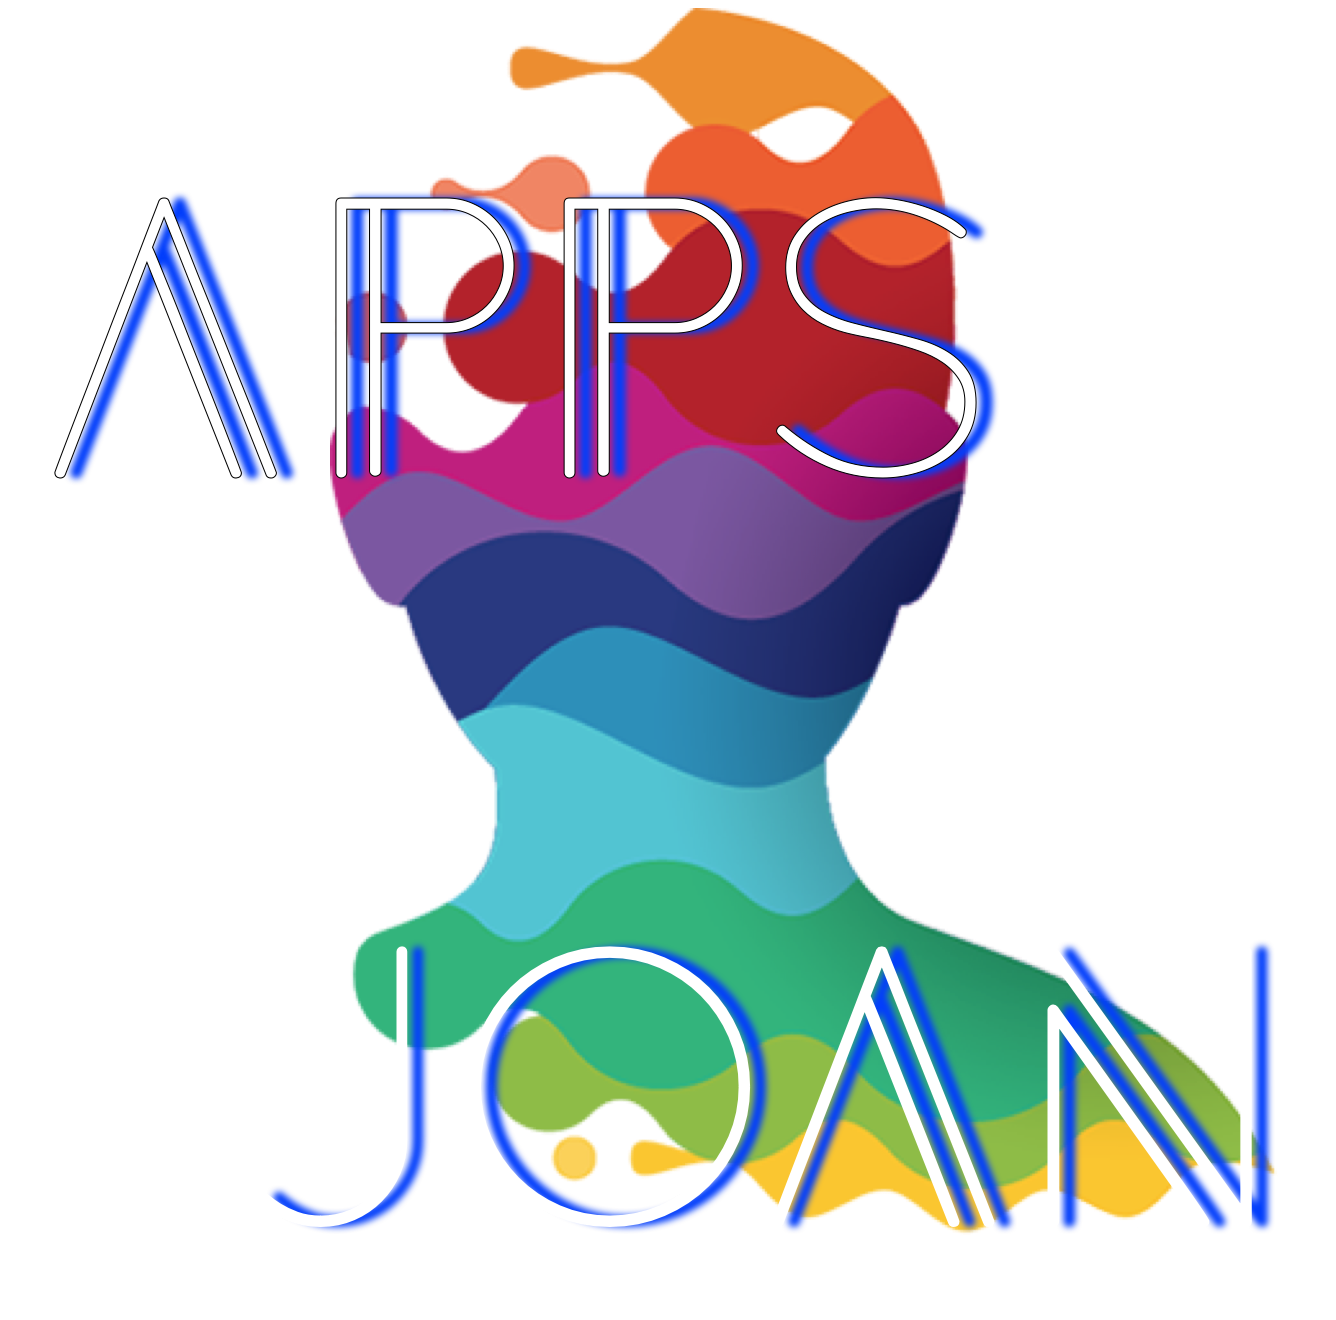 Joan Apps logo